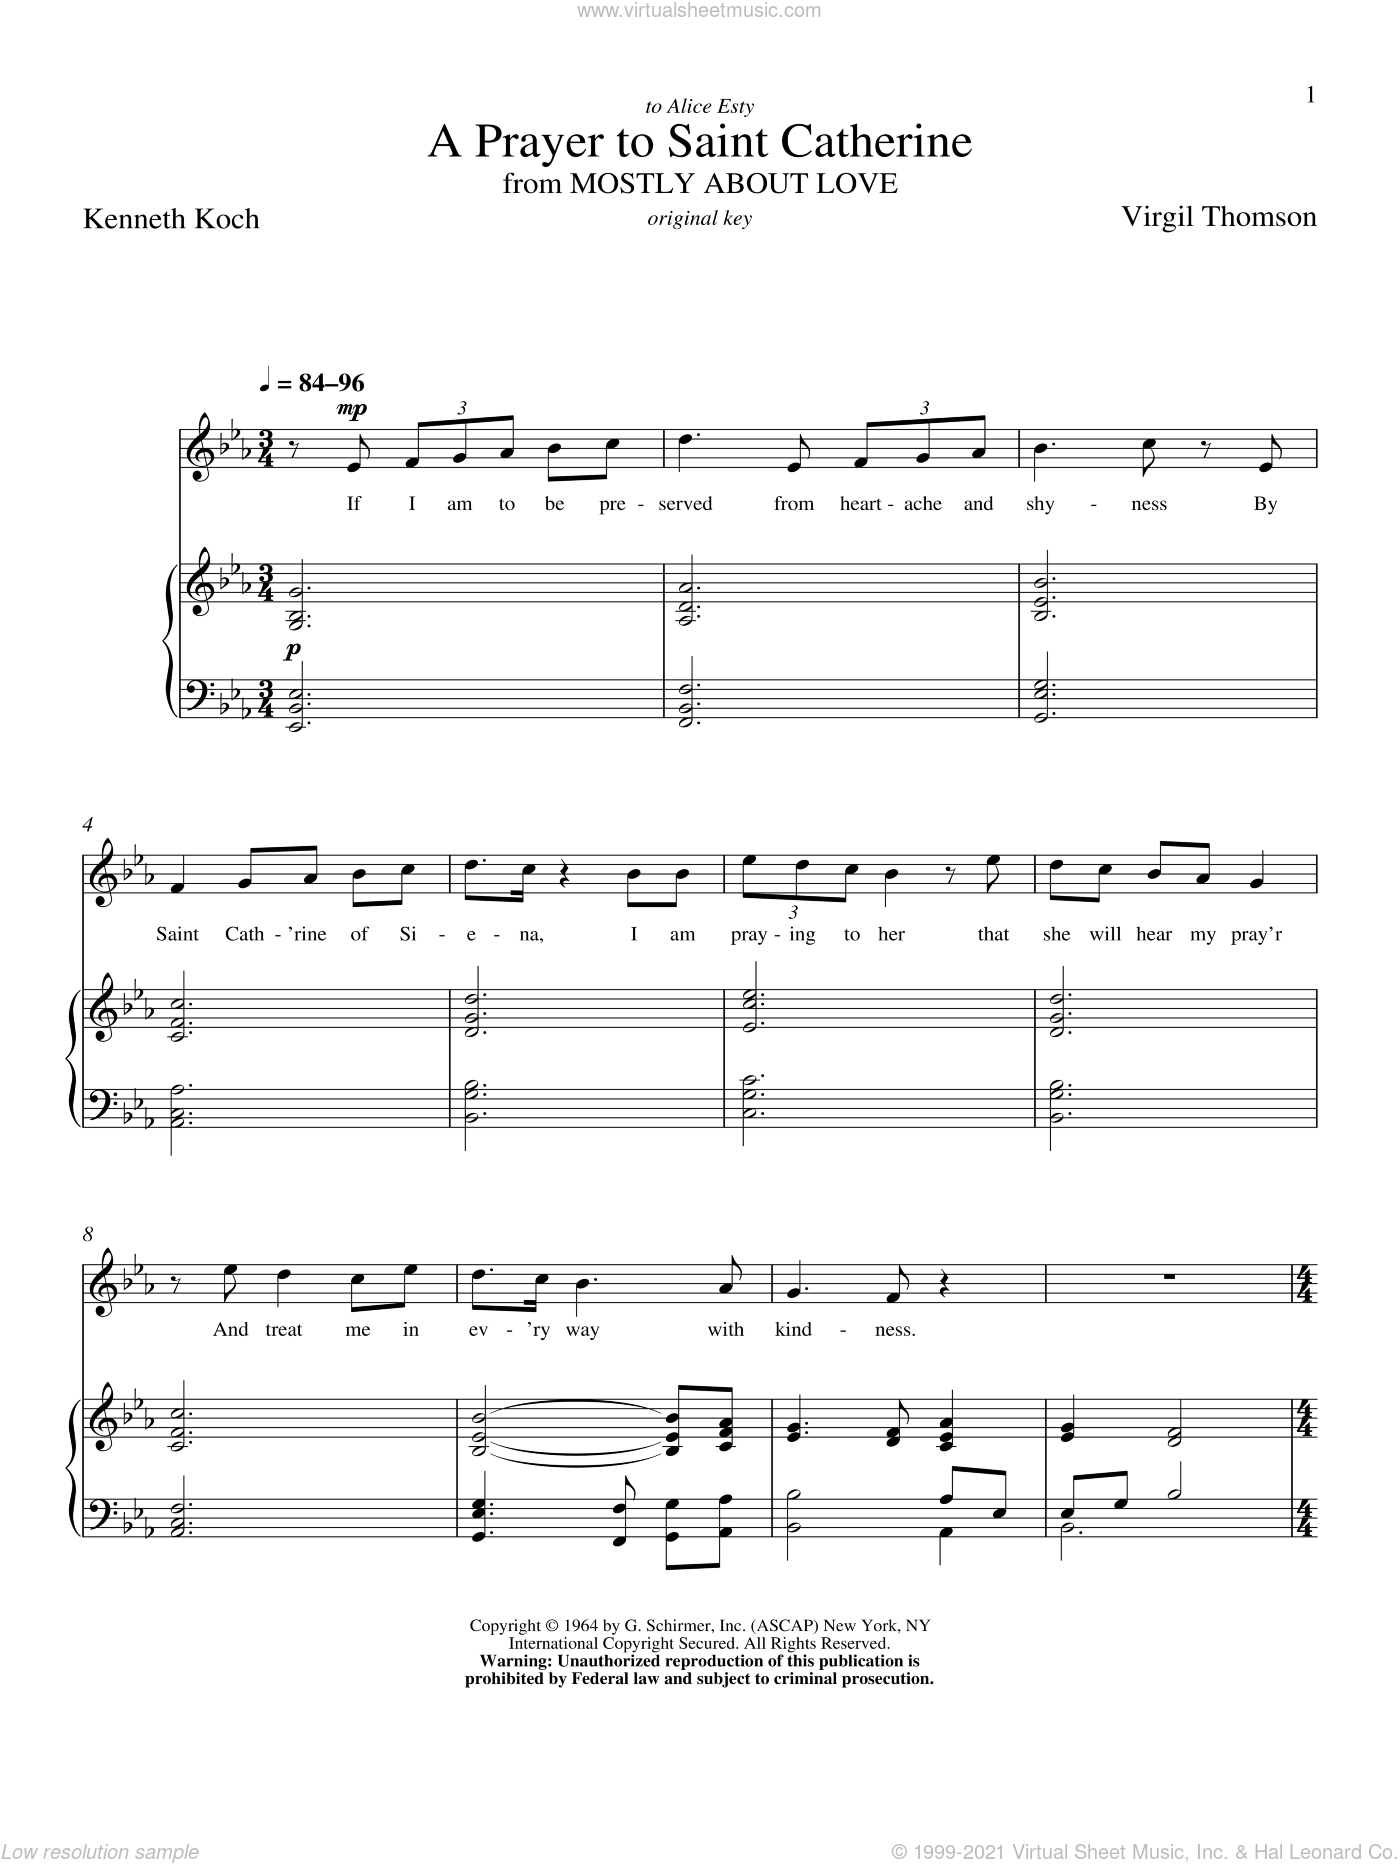 A Prayer To Saint Catherine sheet music for voice and piano (High ) by Kenneth Koch, Richard Walters and Virgil Thomson. Score Image Preview.